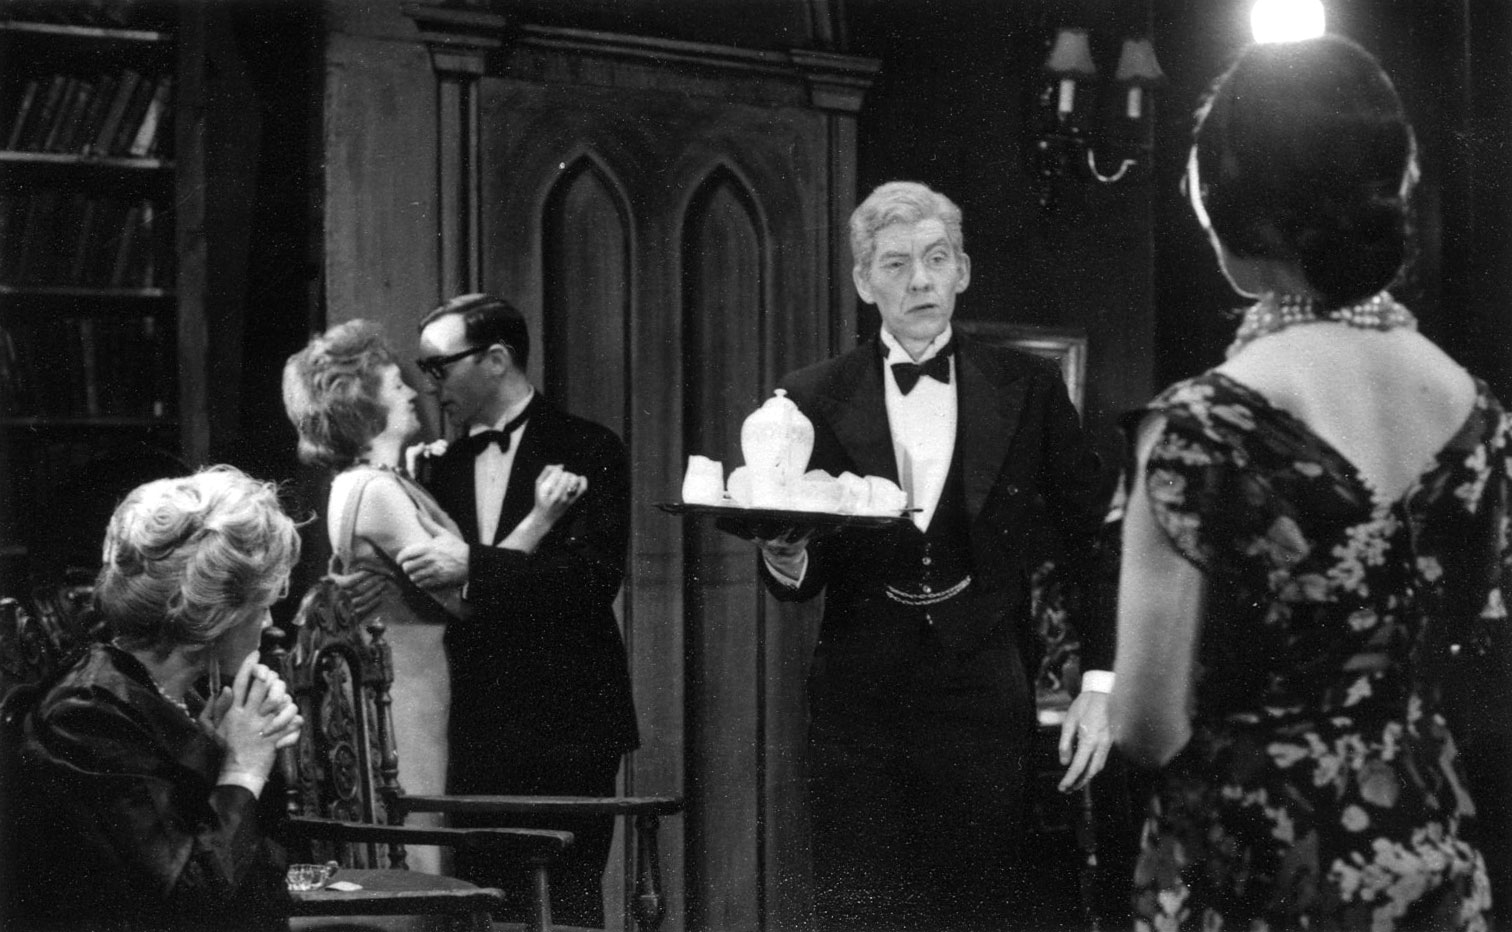 L to R: Bridget Turner, John Scarborough, Ian McKellen, Kristine Howarth.<BR><BR><em>I played the ancient butler (Tredwell) with hesitant gait and powdered hair.</em>